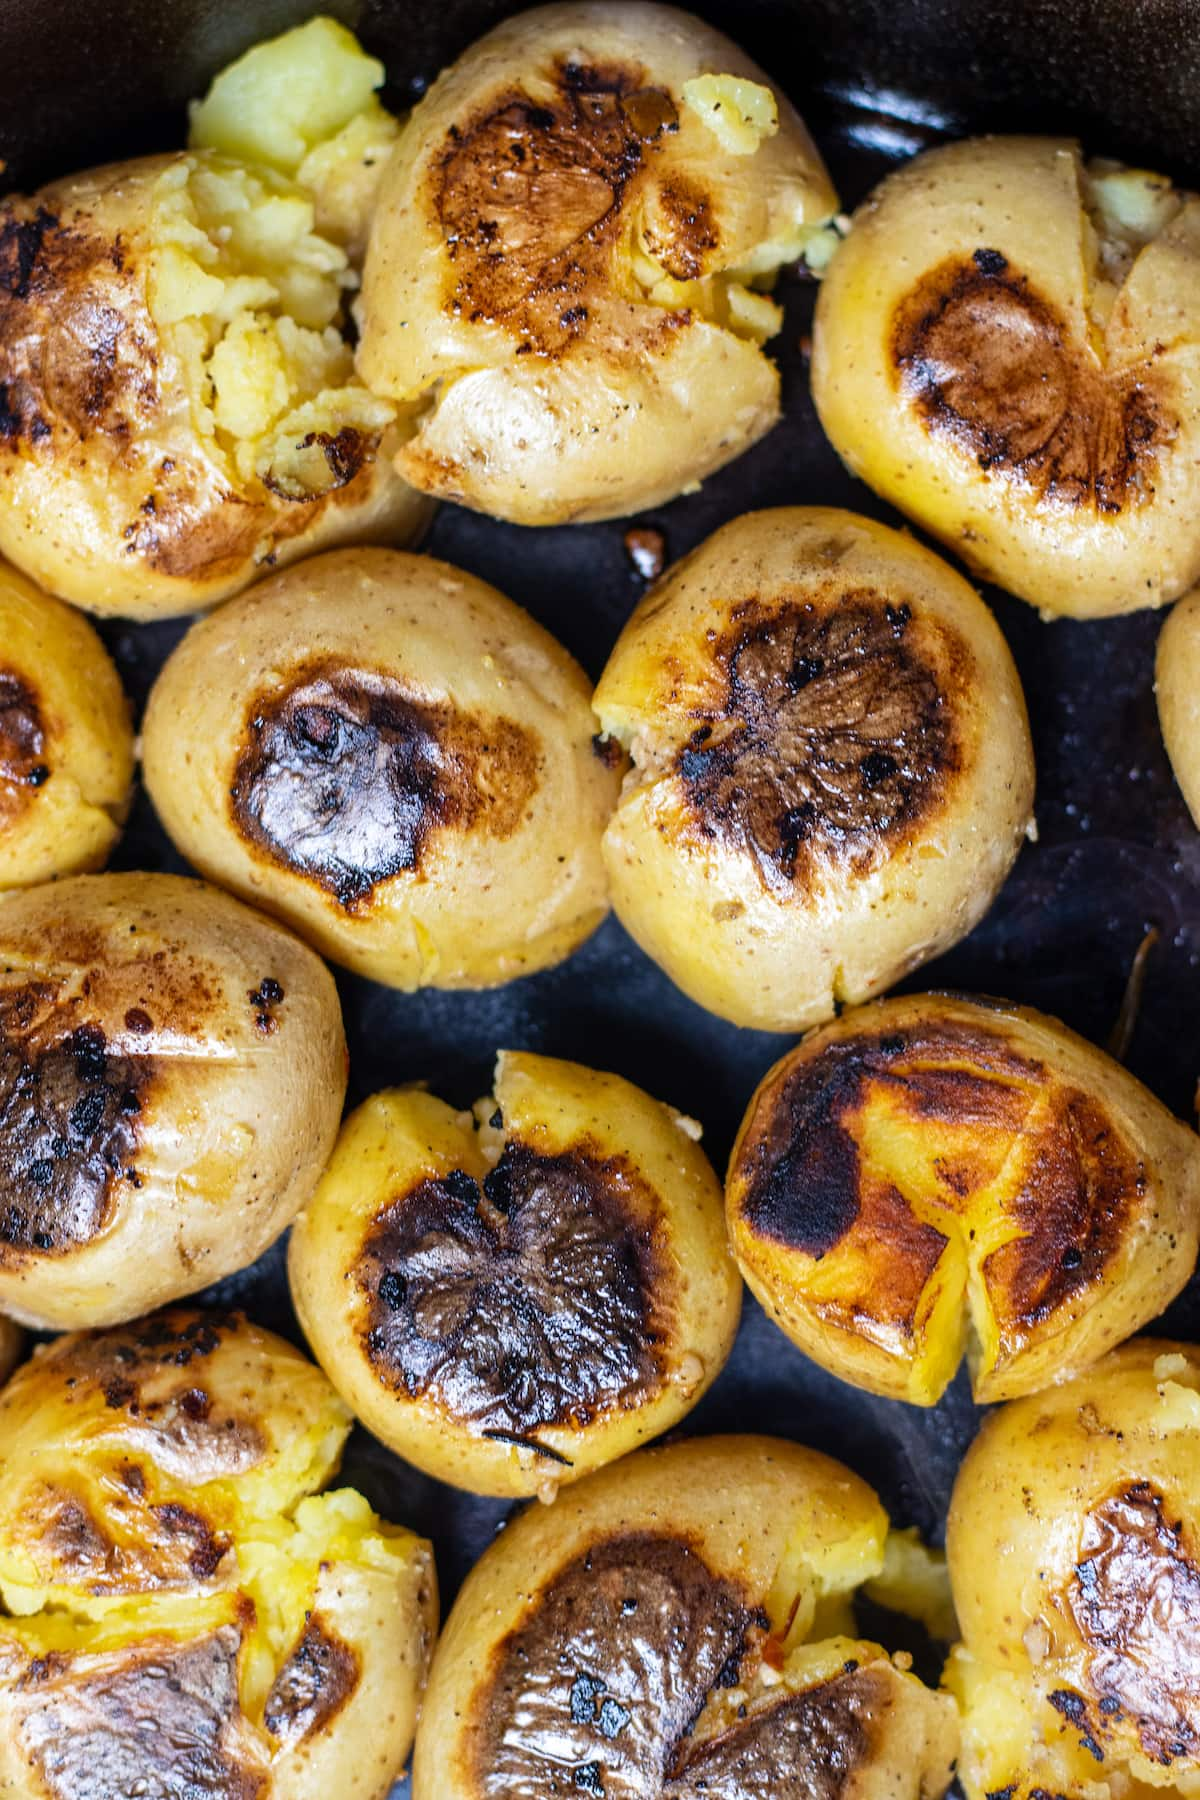 crisped skin on potatoes in a skillet.